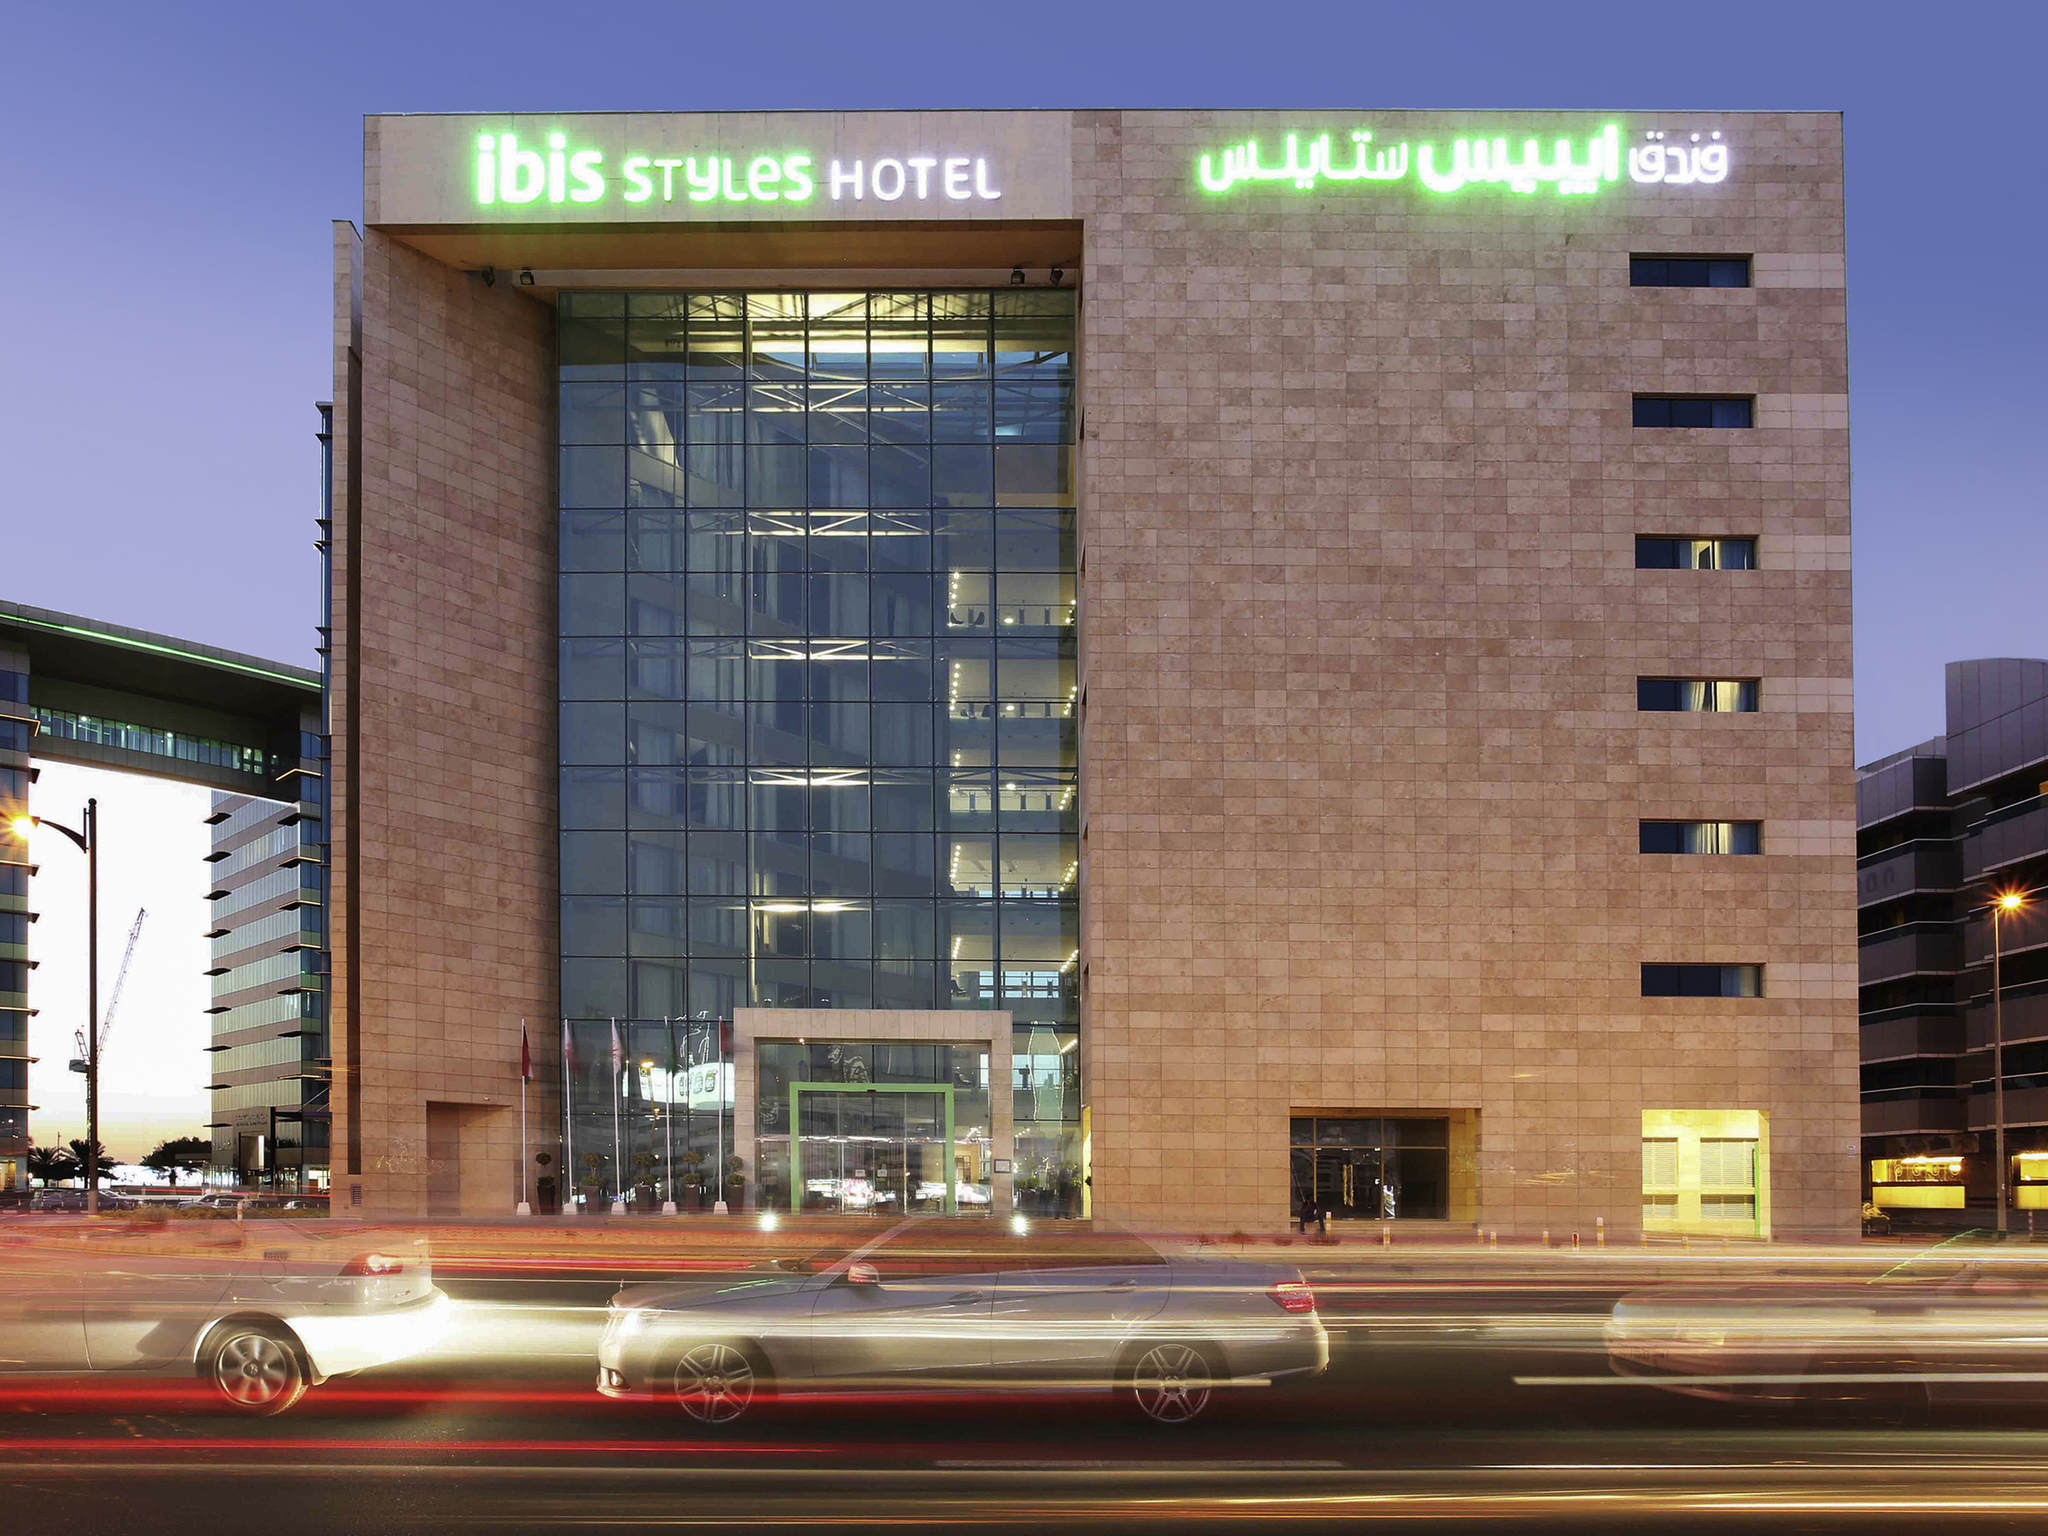 Hotel in dubai ibis styles dubai jumeira with pool gym for K porte inn hotel dubai